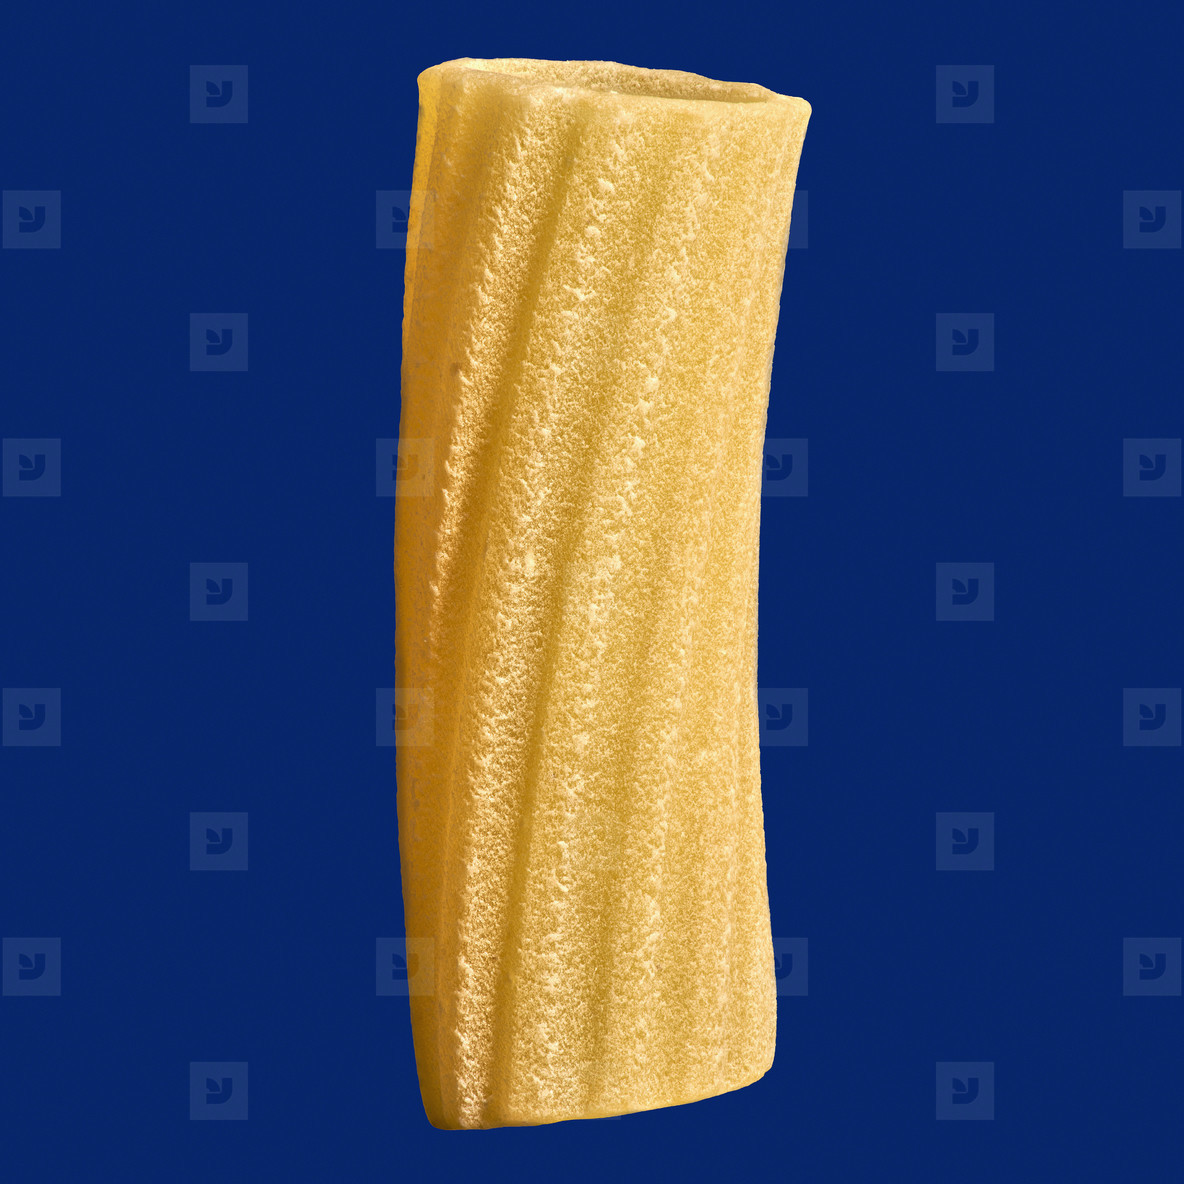 Close up uncooked penne rigate noodle on blue background